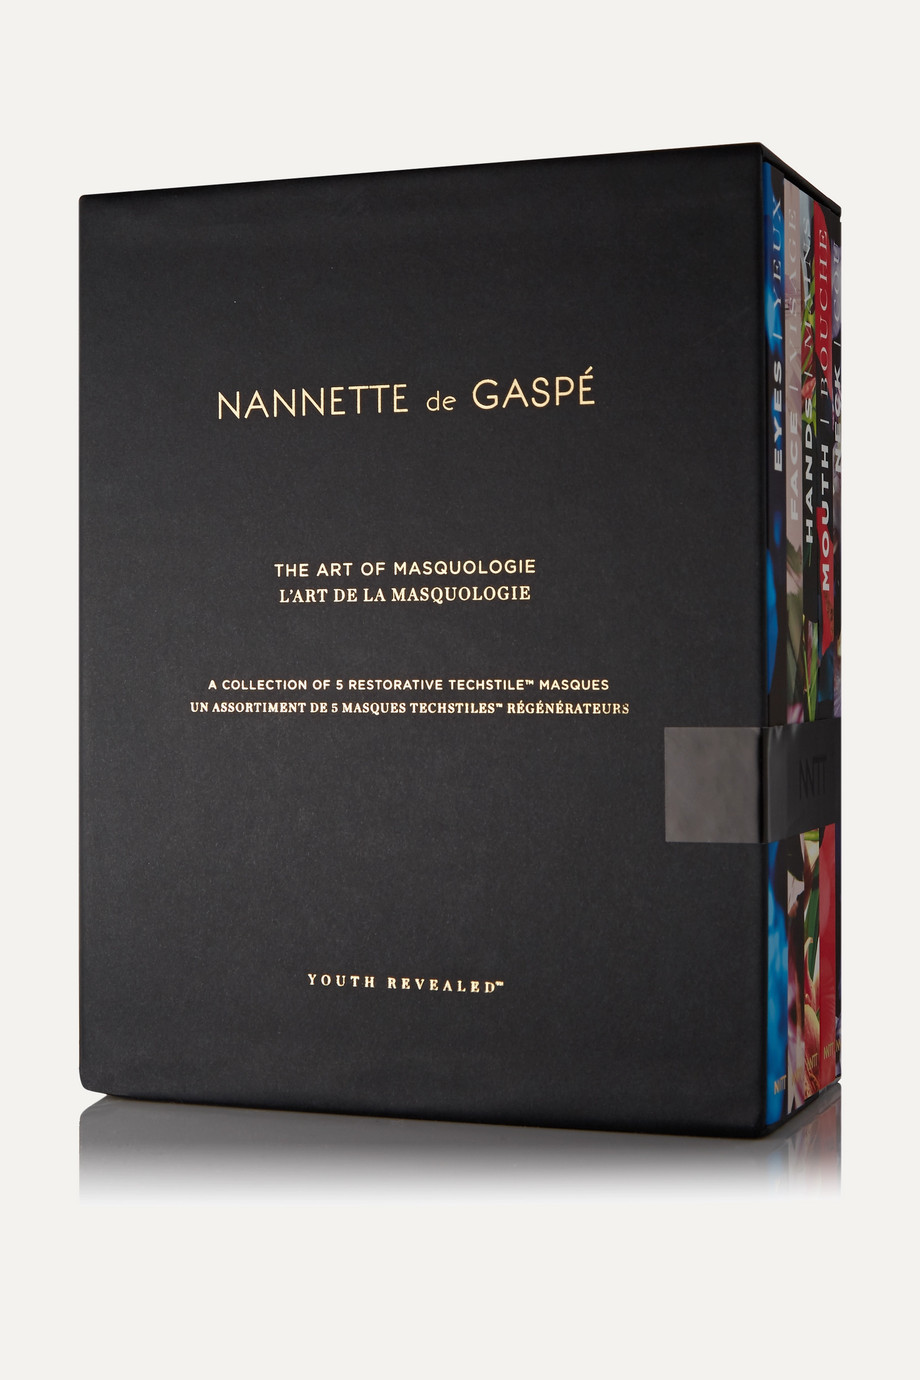 NANNETTE DE GASPÉ Art of Masquologie - Set of 5 Masques